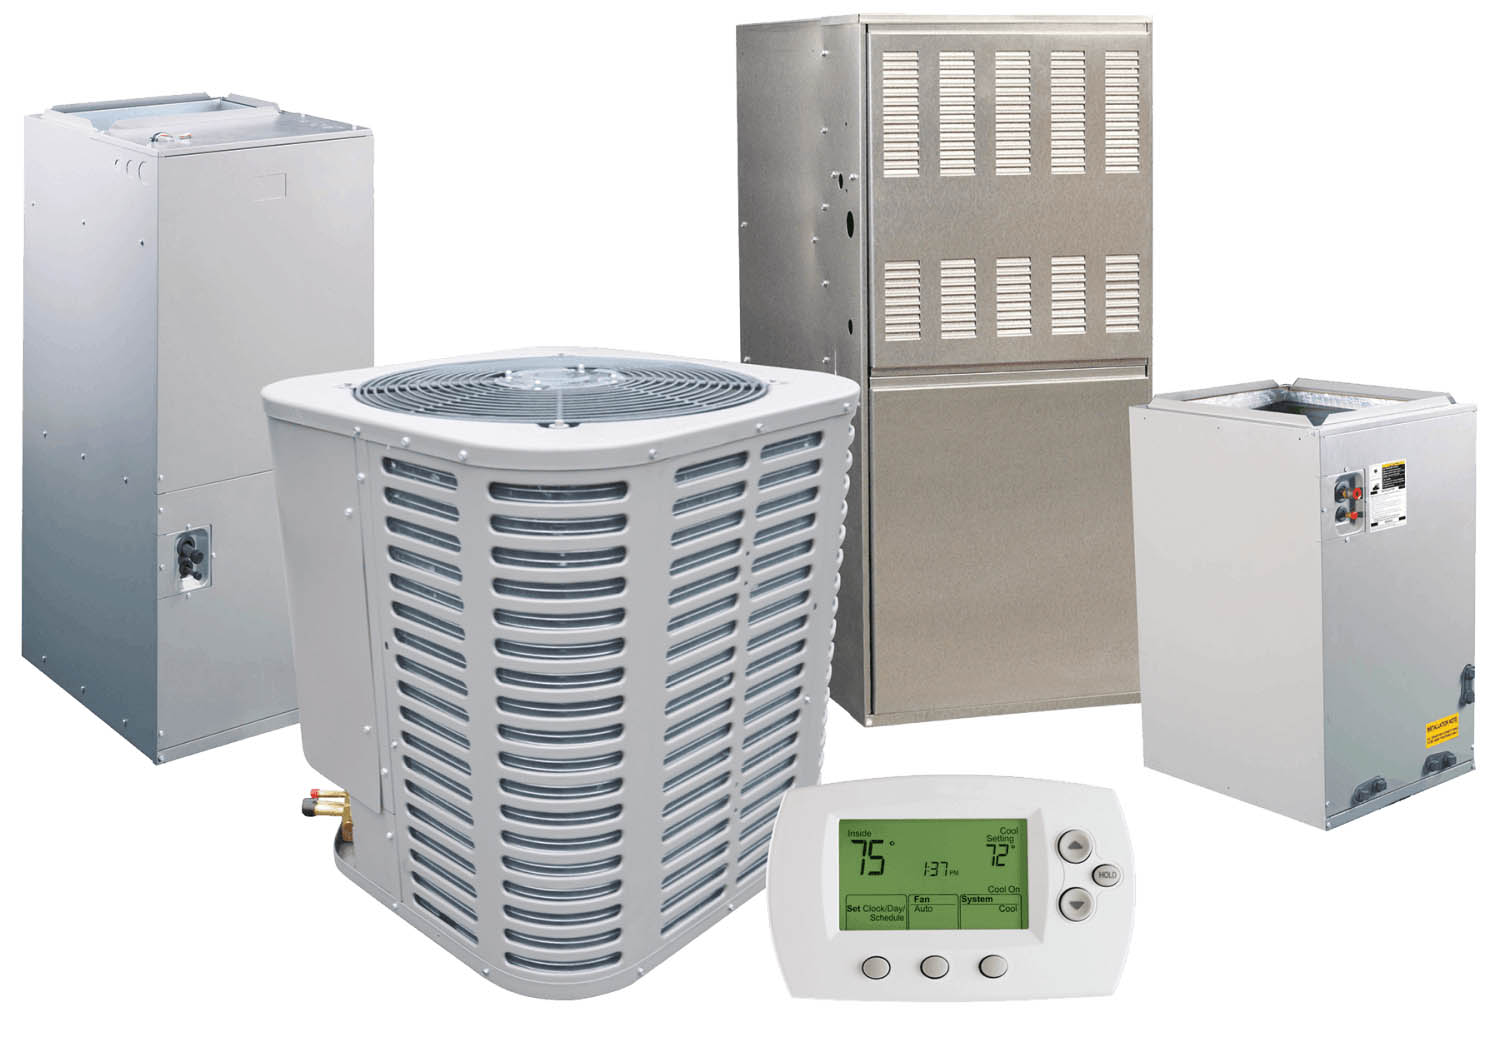 About Ameristar Ny Affordable Heating Amp Cooling